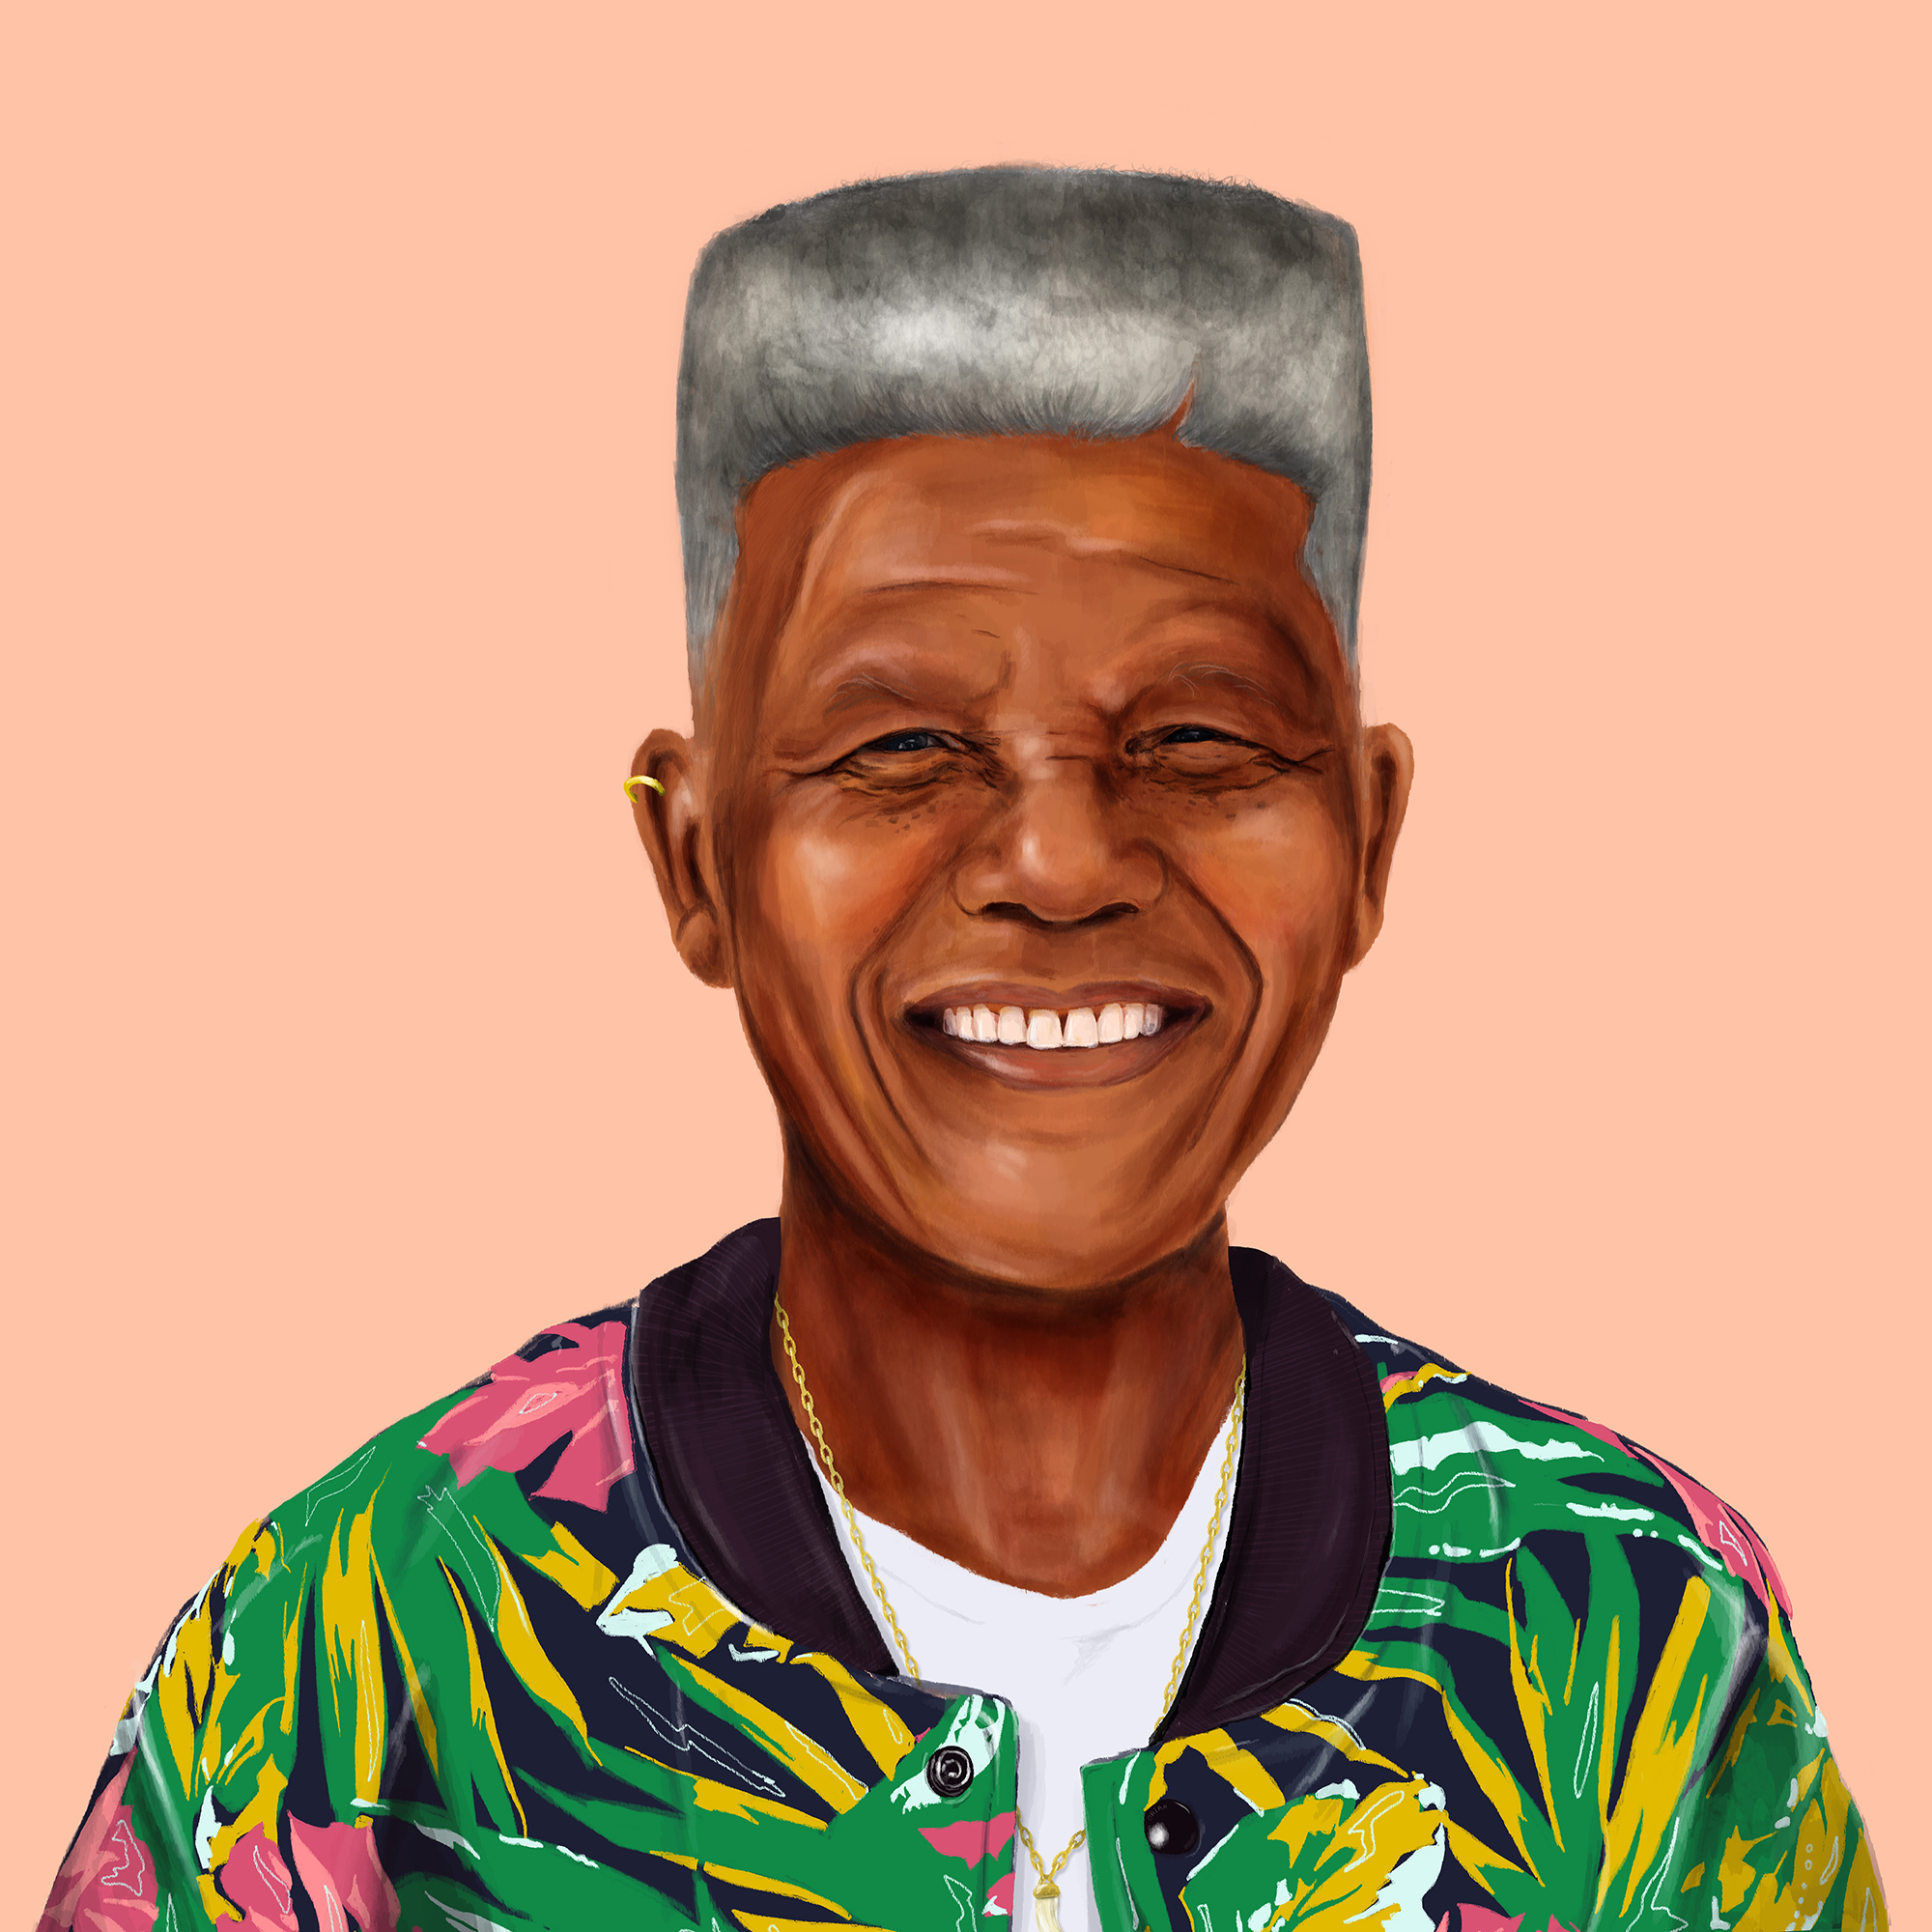 nelson mandelas leadership Biography, leadership lessons and quotes from nelson mandela, the first black president of south africa mandela helped end apartheid in south africa.